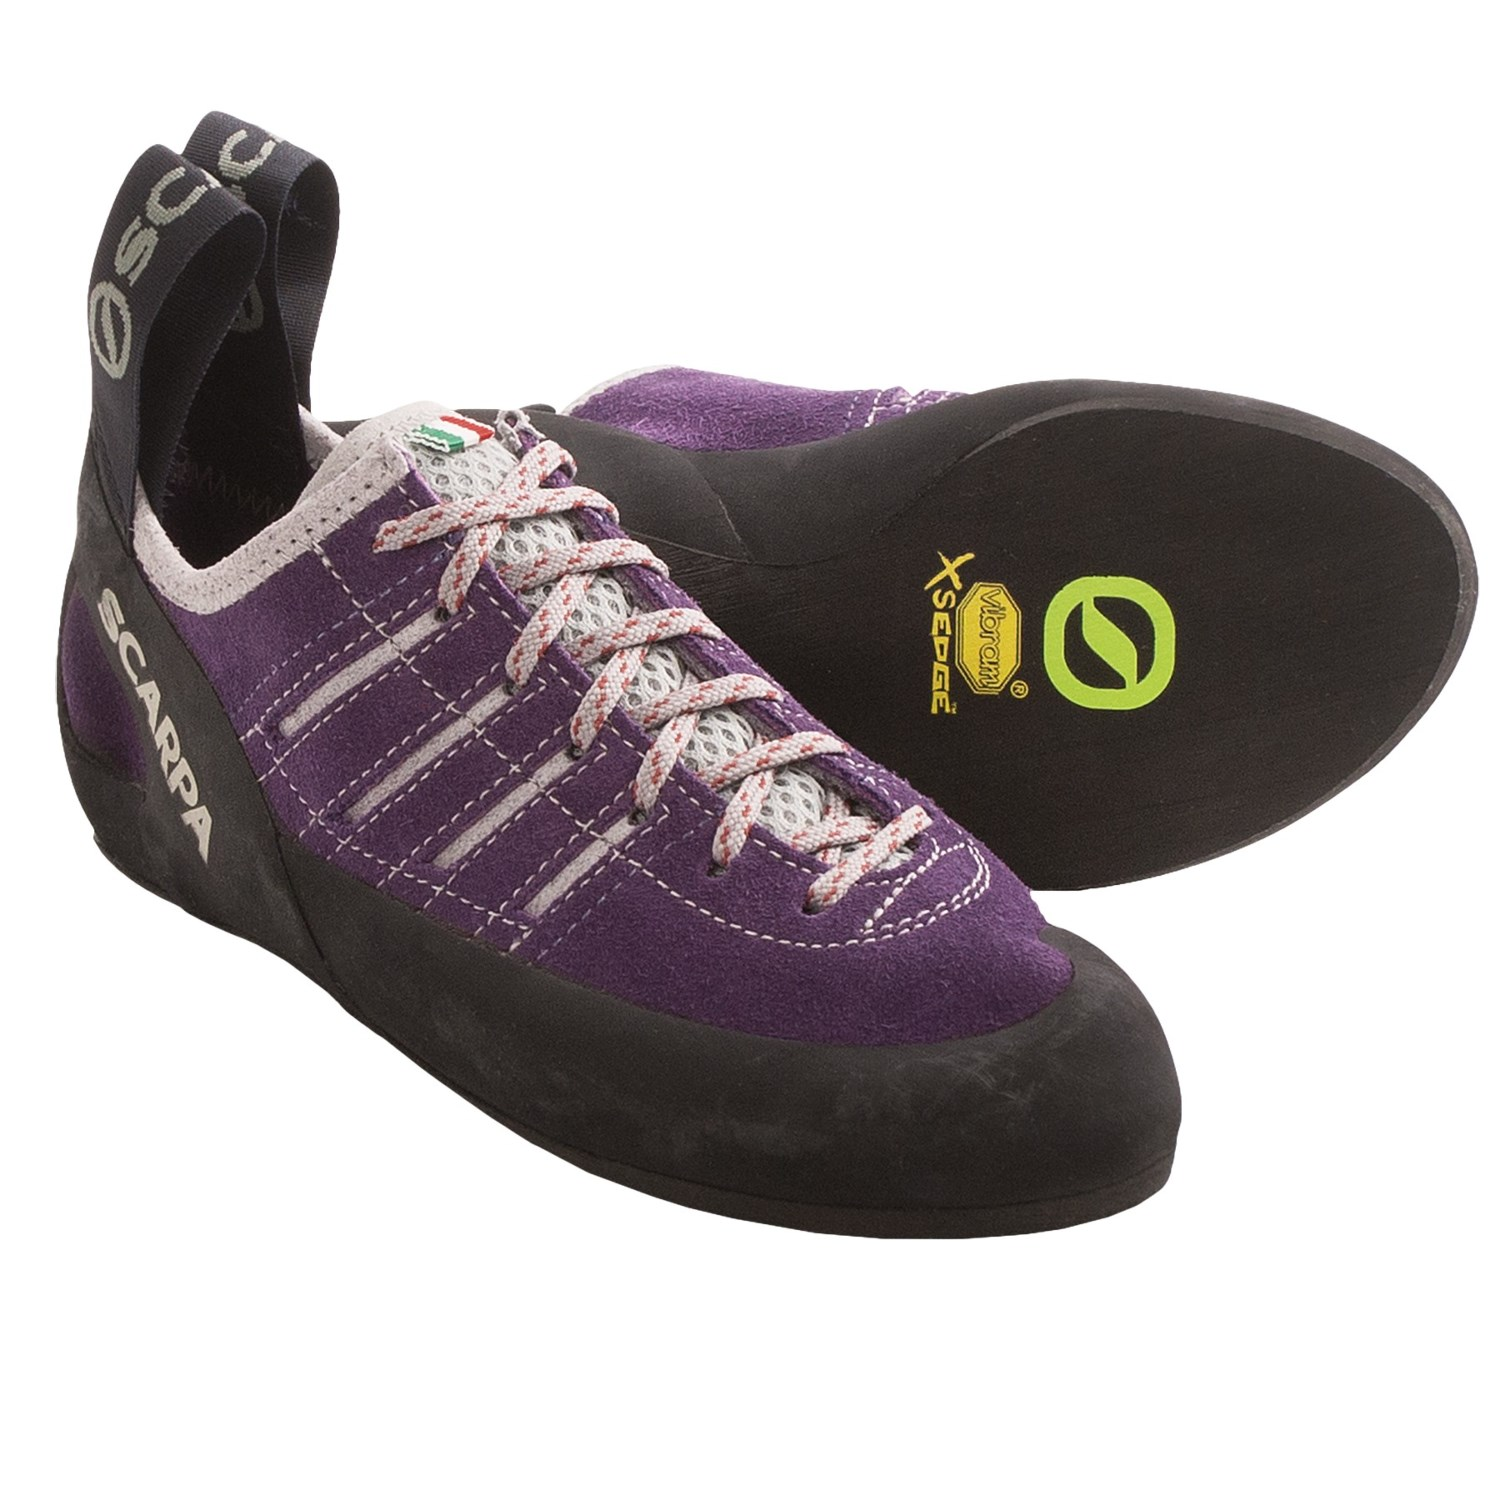 Sierra Trading Post Climbing Shoes Sale